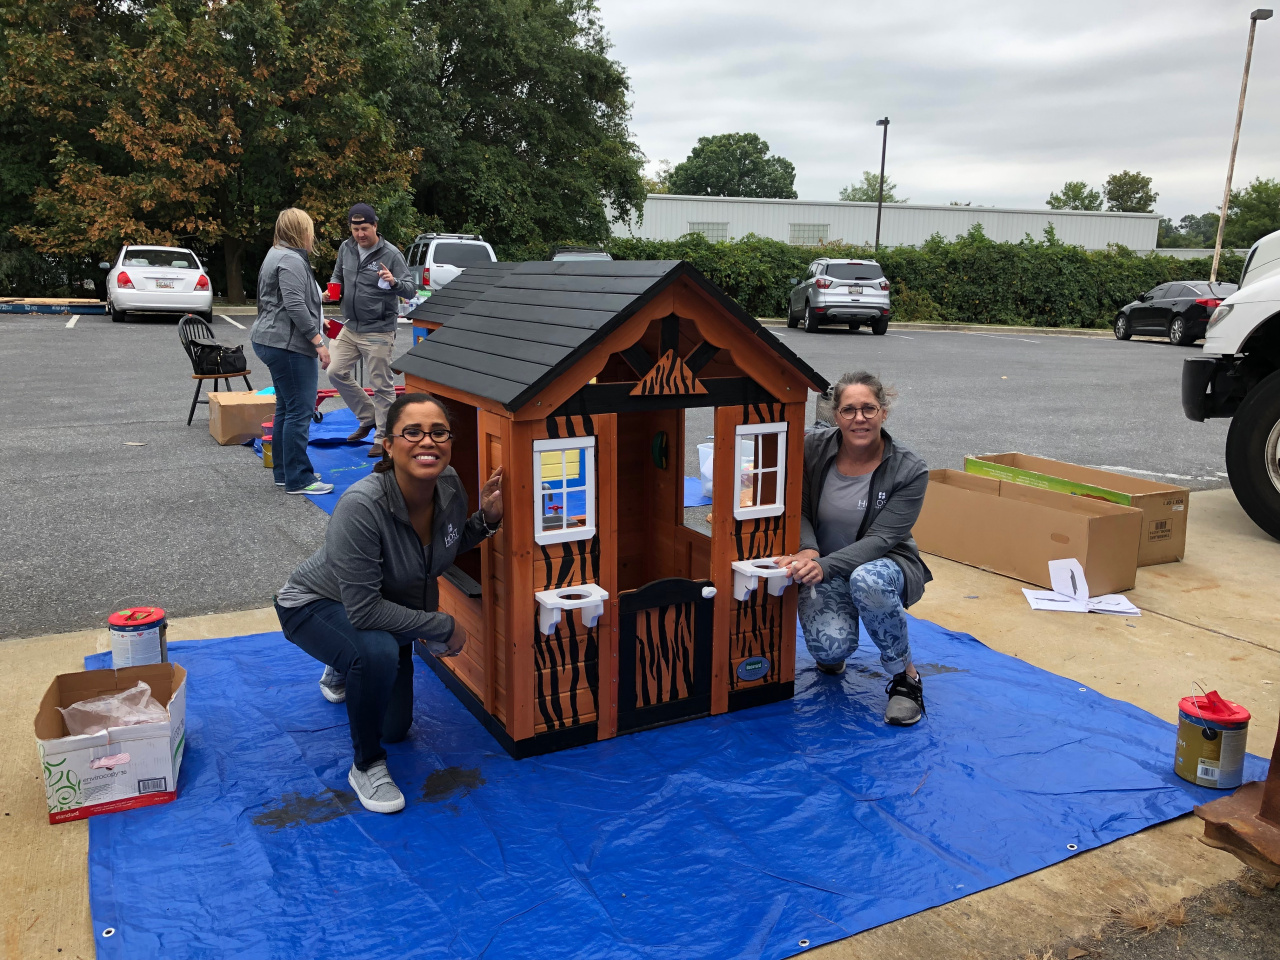 Volunteers construct and paint children's playhouses that are donated to local Habitat families